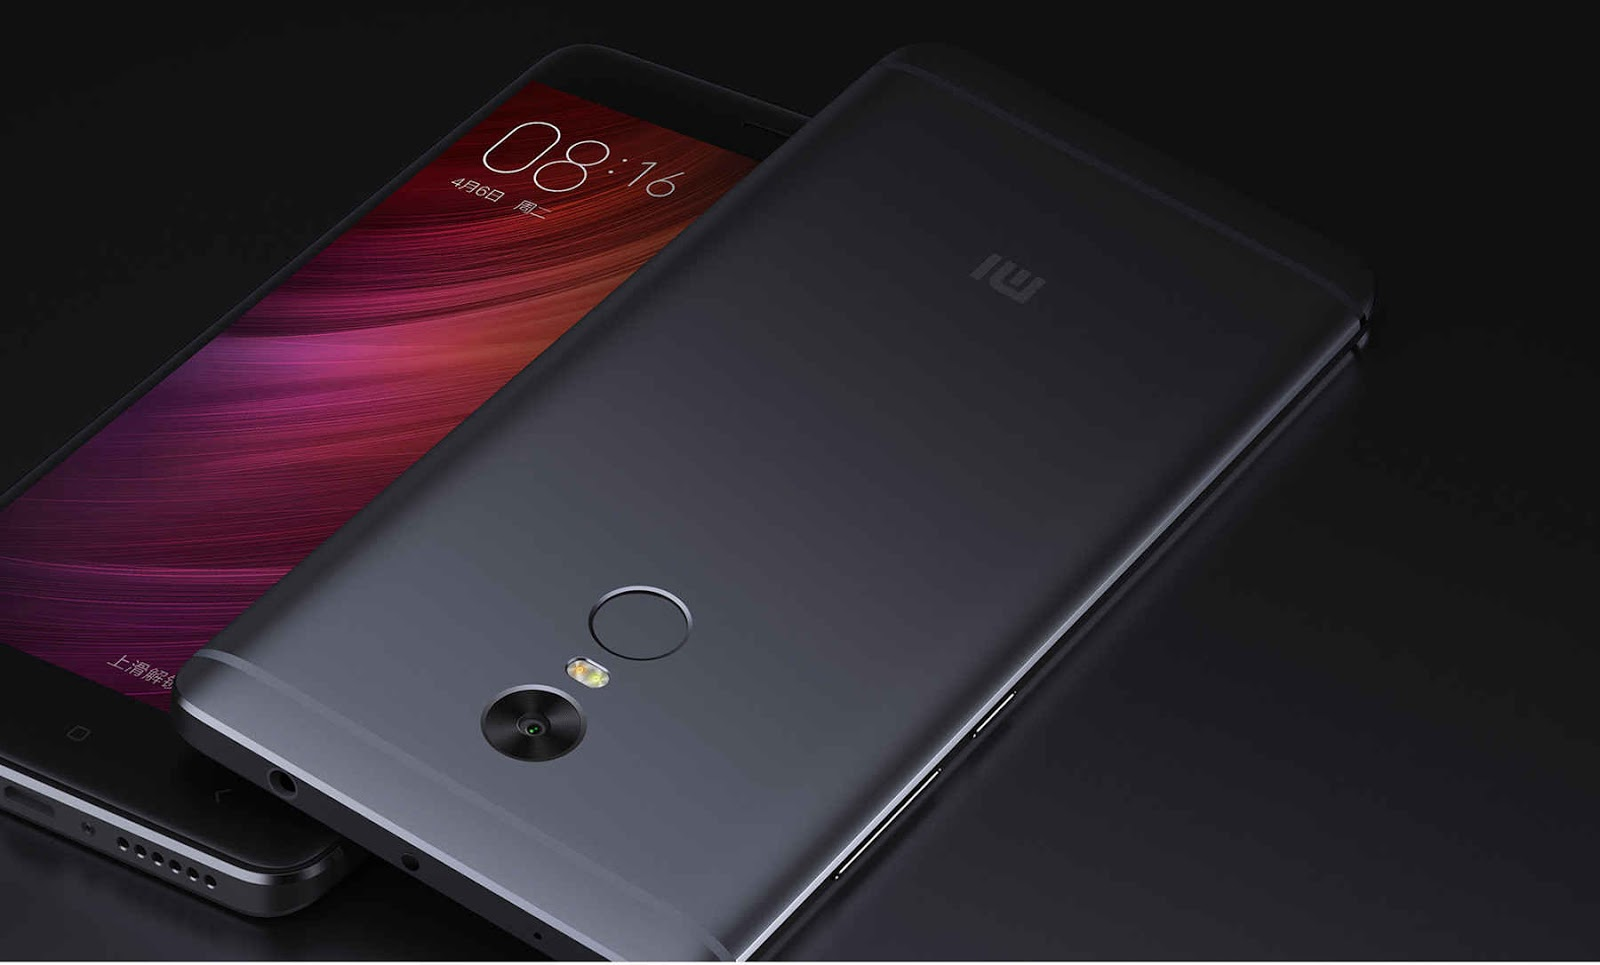 Pin For Redmi Note 4 Wallpaper Images To Pinterest: Redmi Note 4 Sale In Flipkart See Specification,price